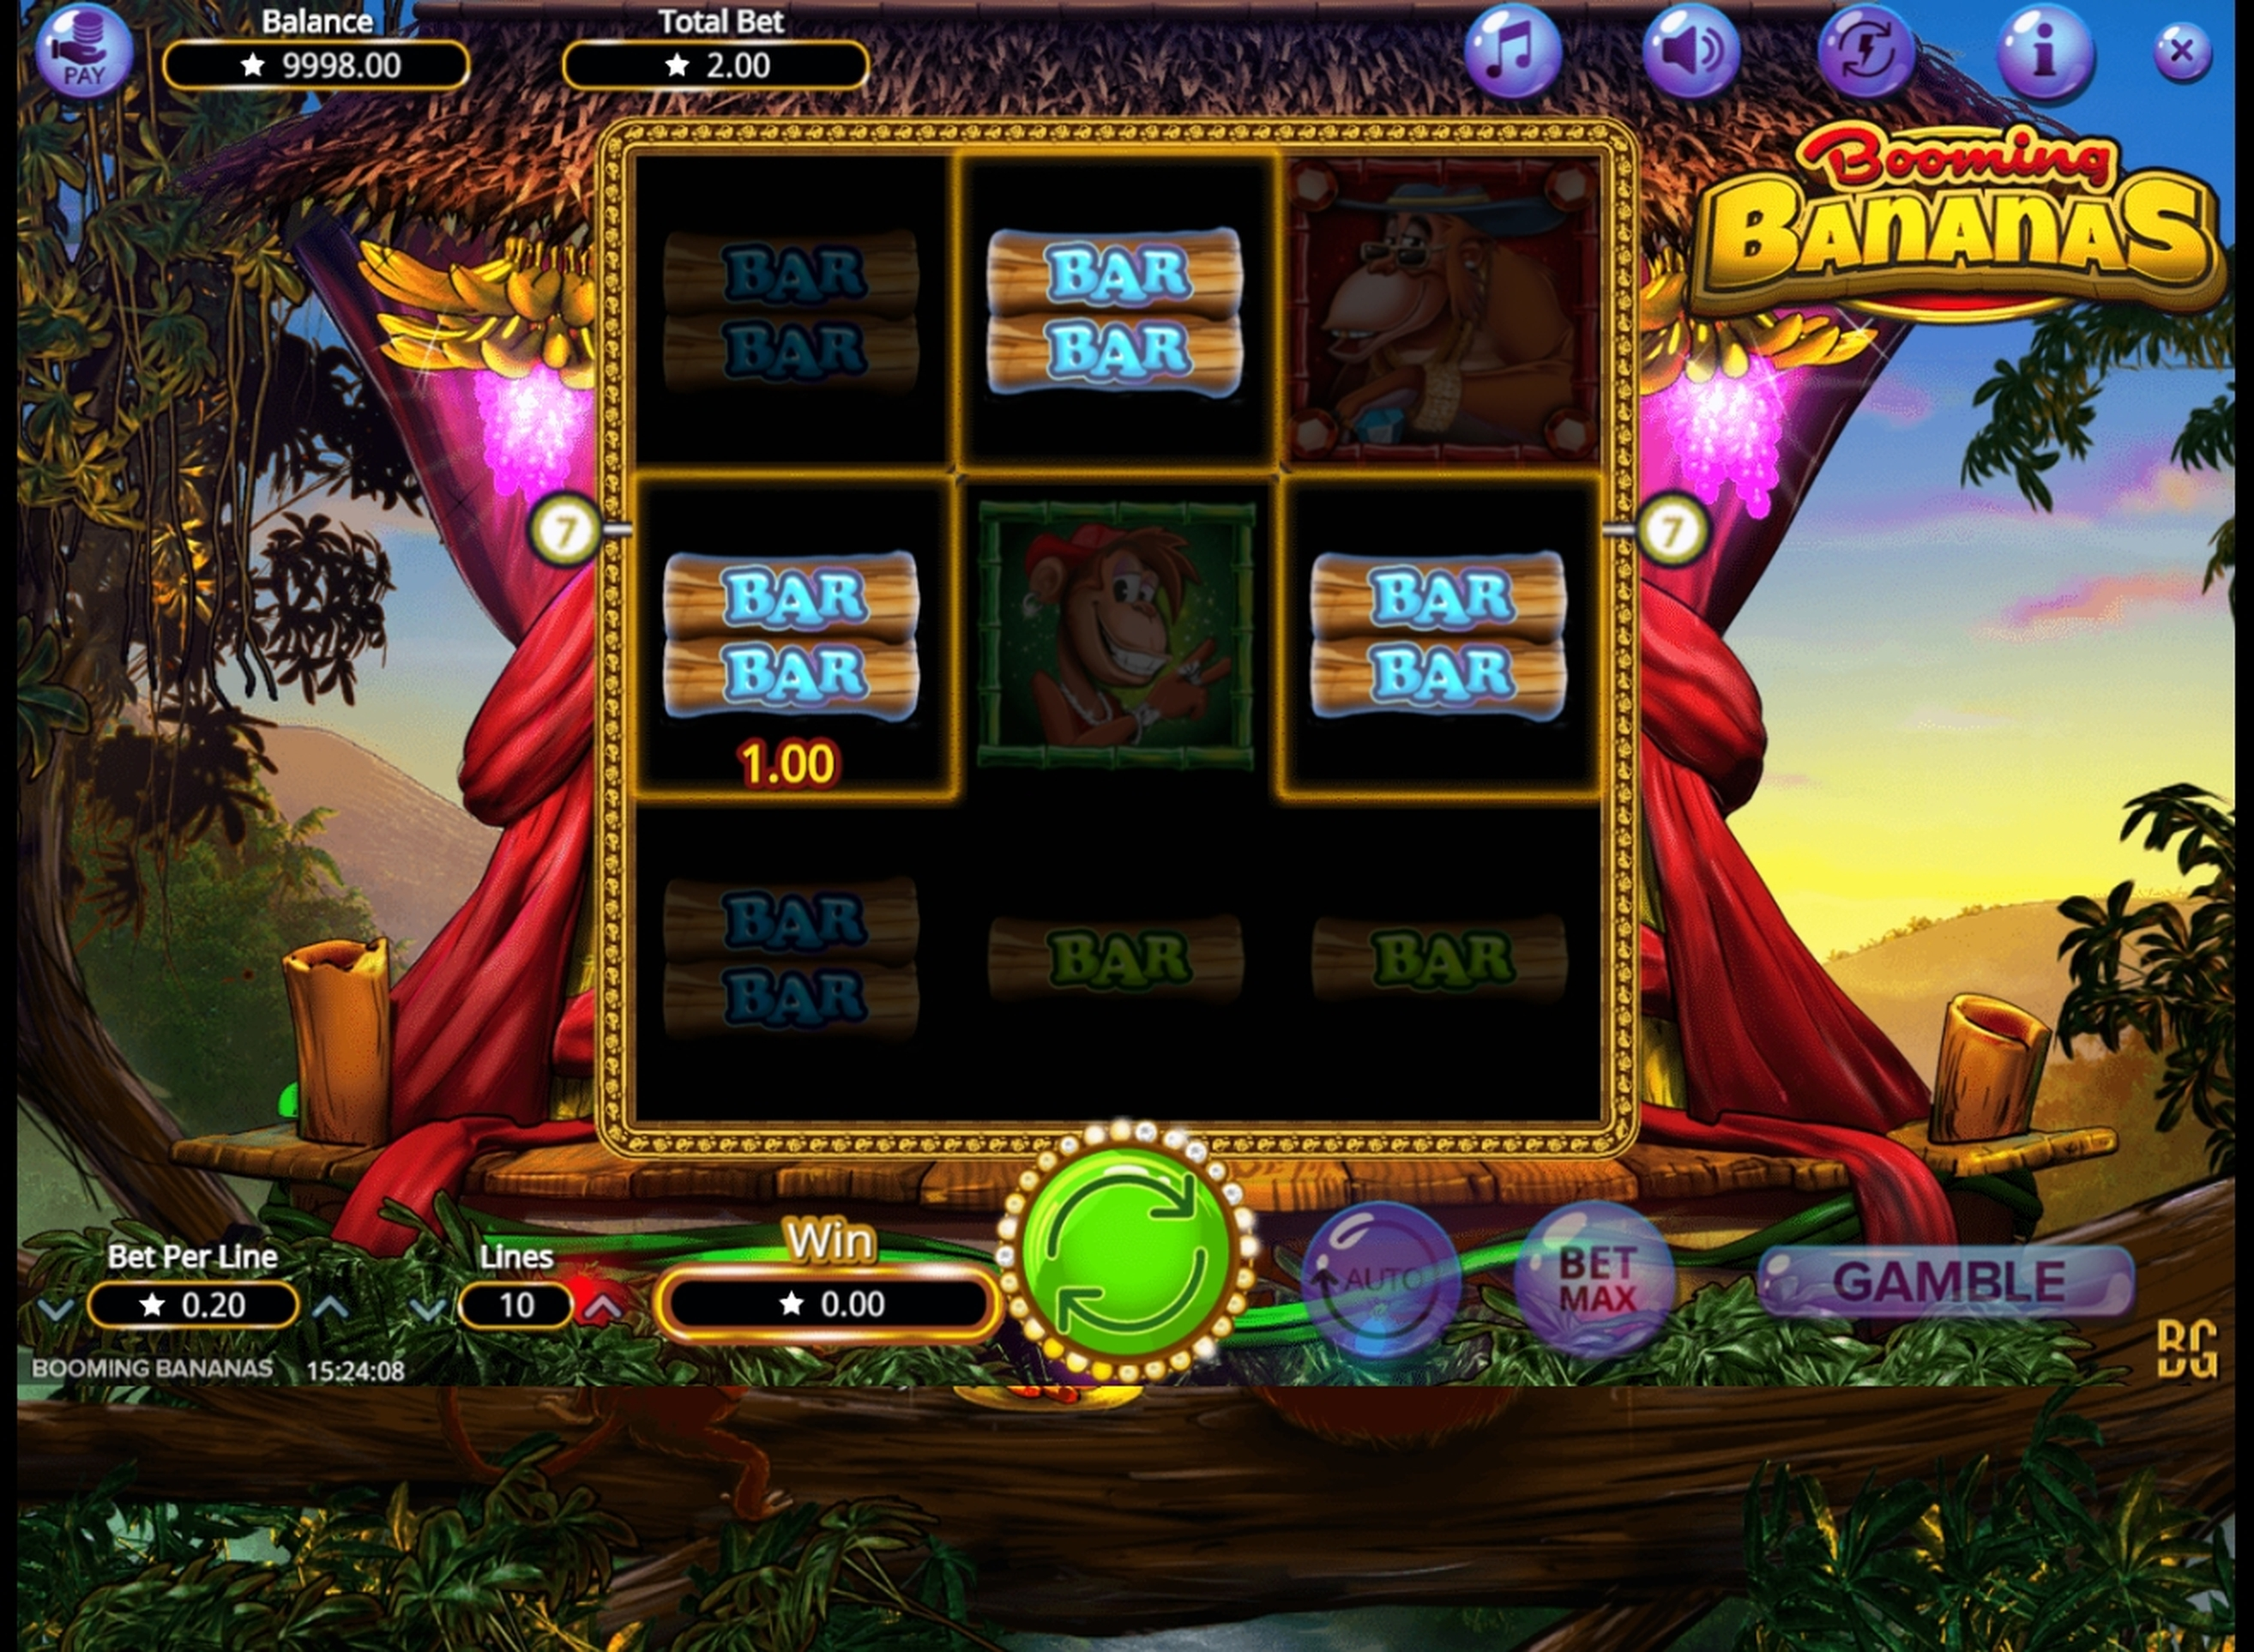 Win Money in Booming Bananas Free Slot Game by Booming Games